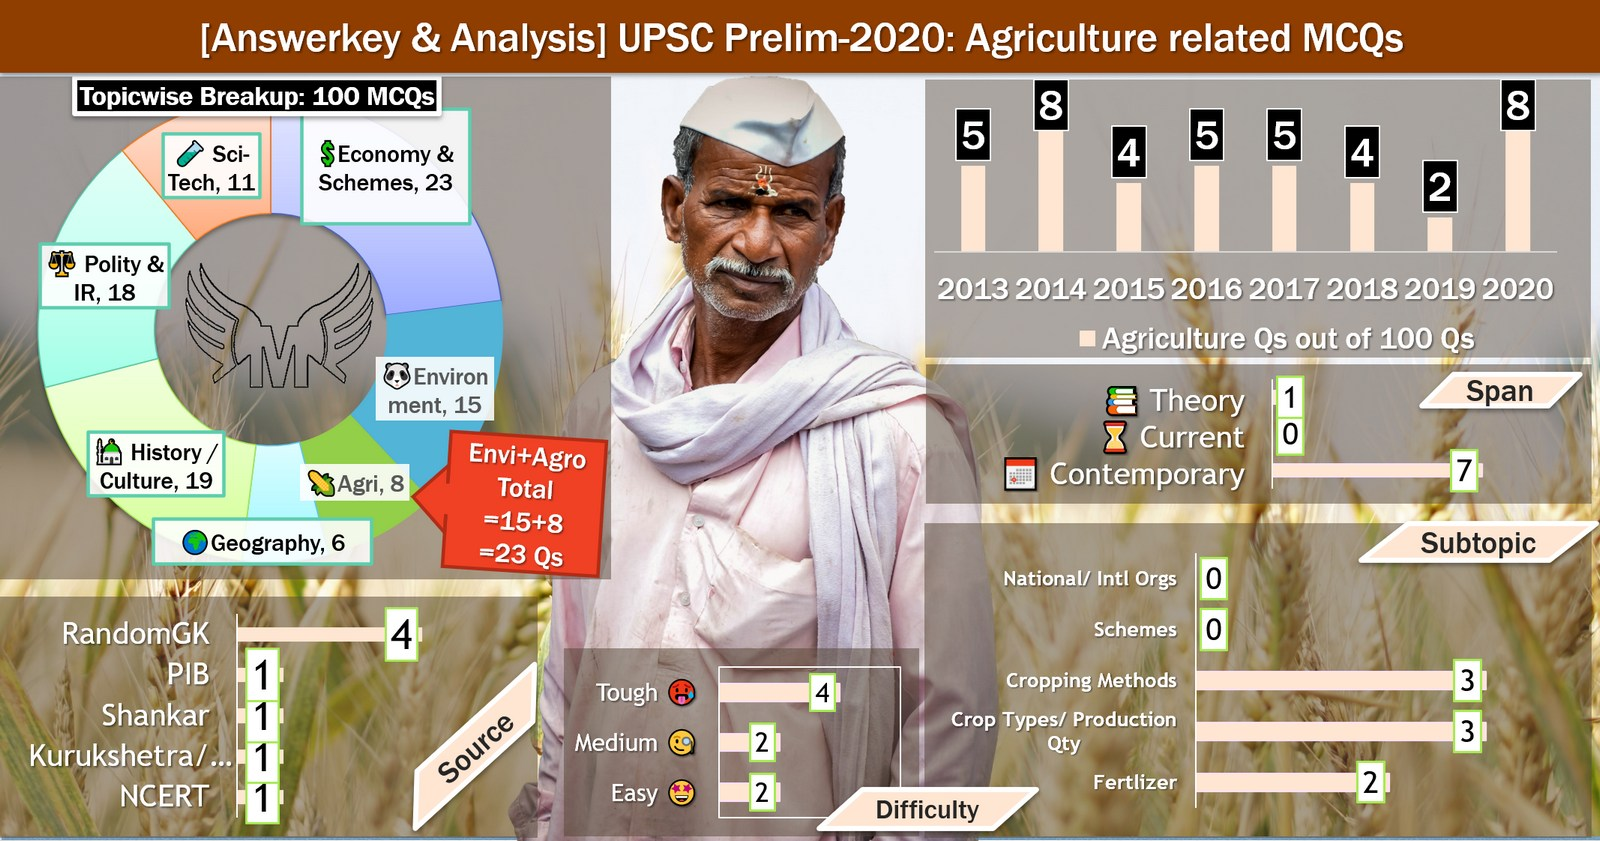 UPSC Prelims 2020 agriculture answer key and analysis by Mrunal